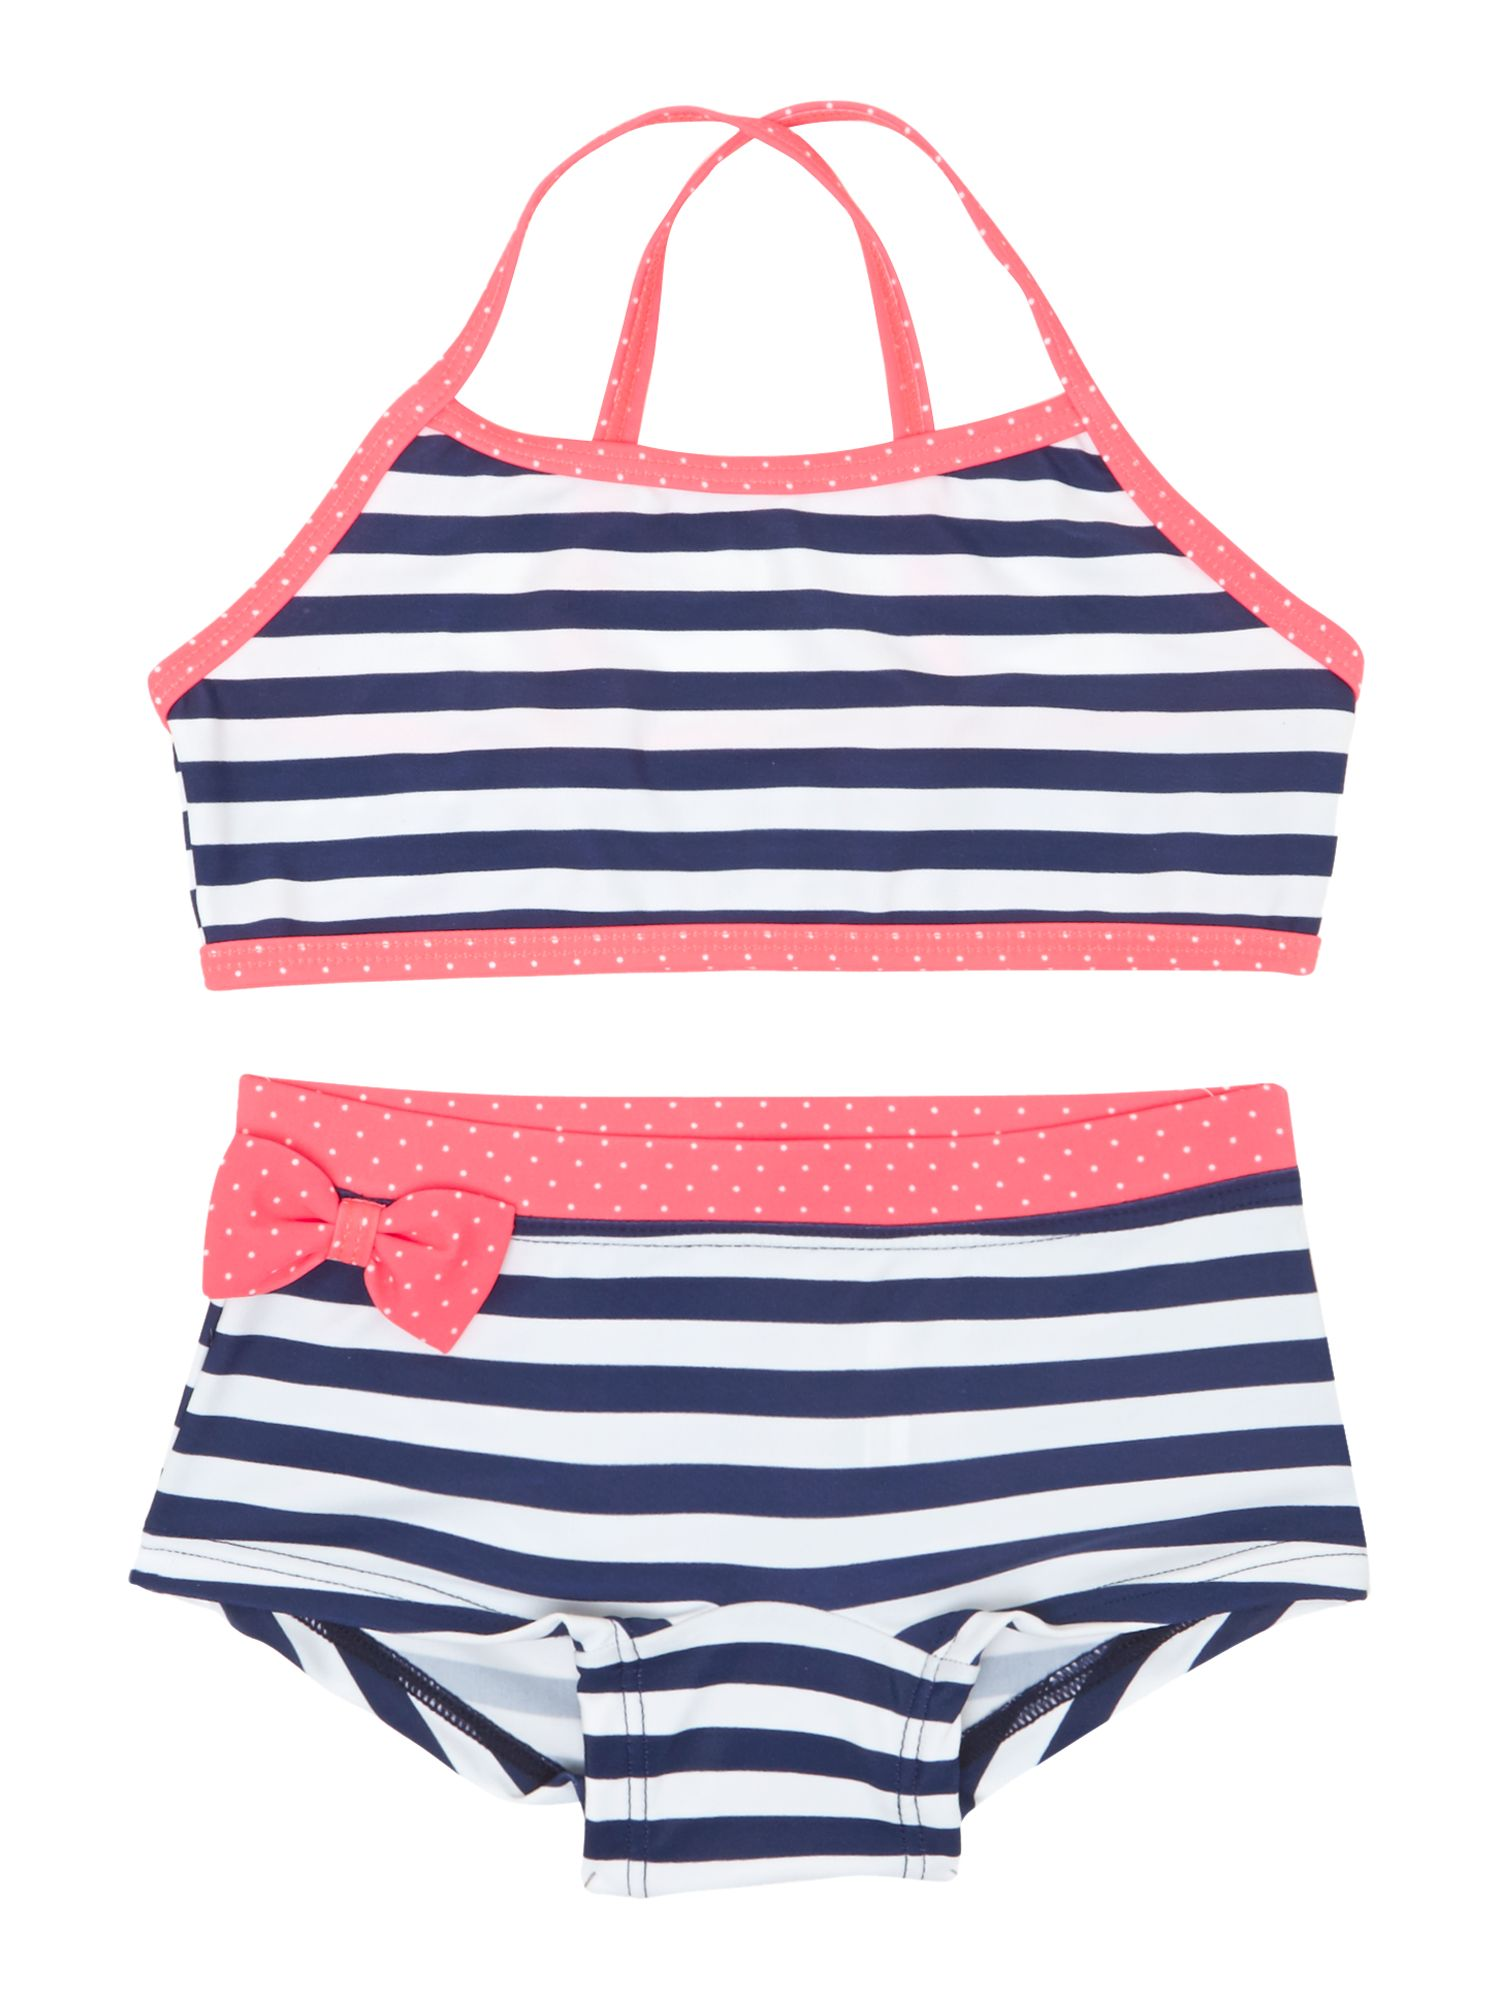 Girls stripe shortie bikini with bow